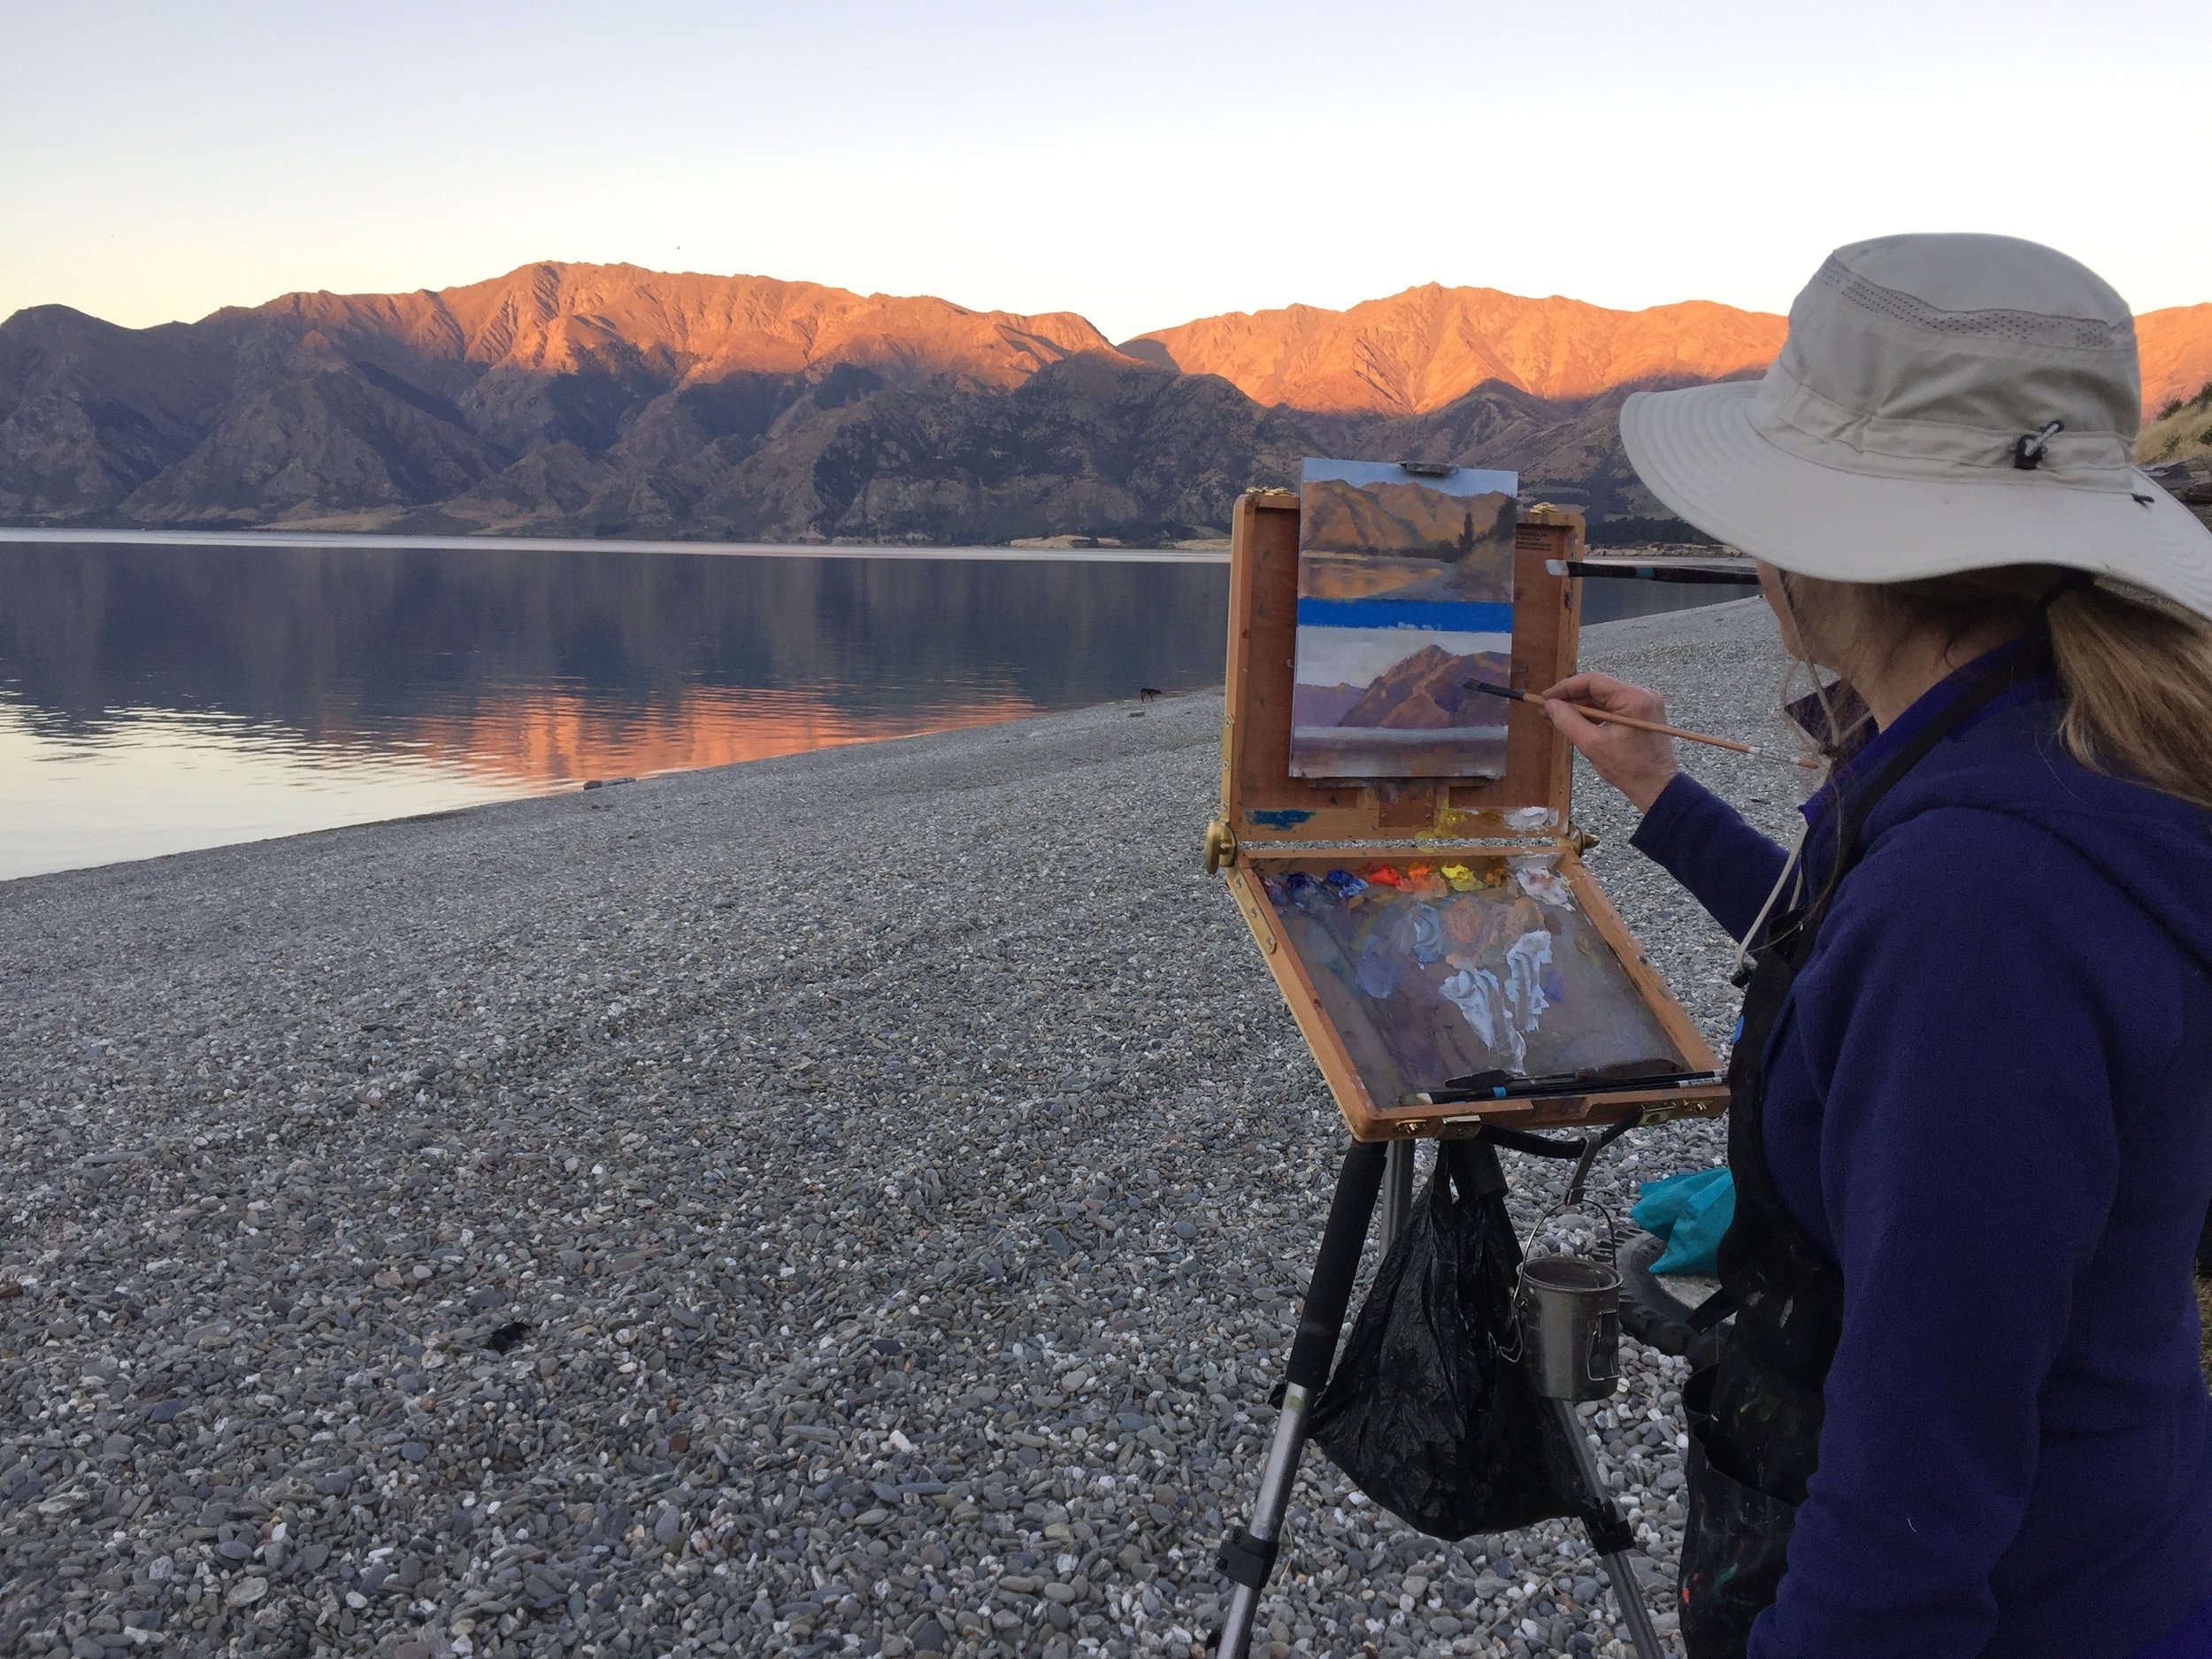 Sunset painting at Lake Hawea - Photo Penny Willocks